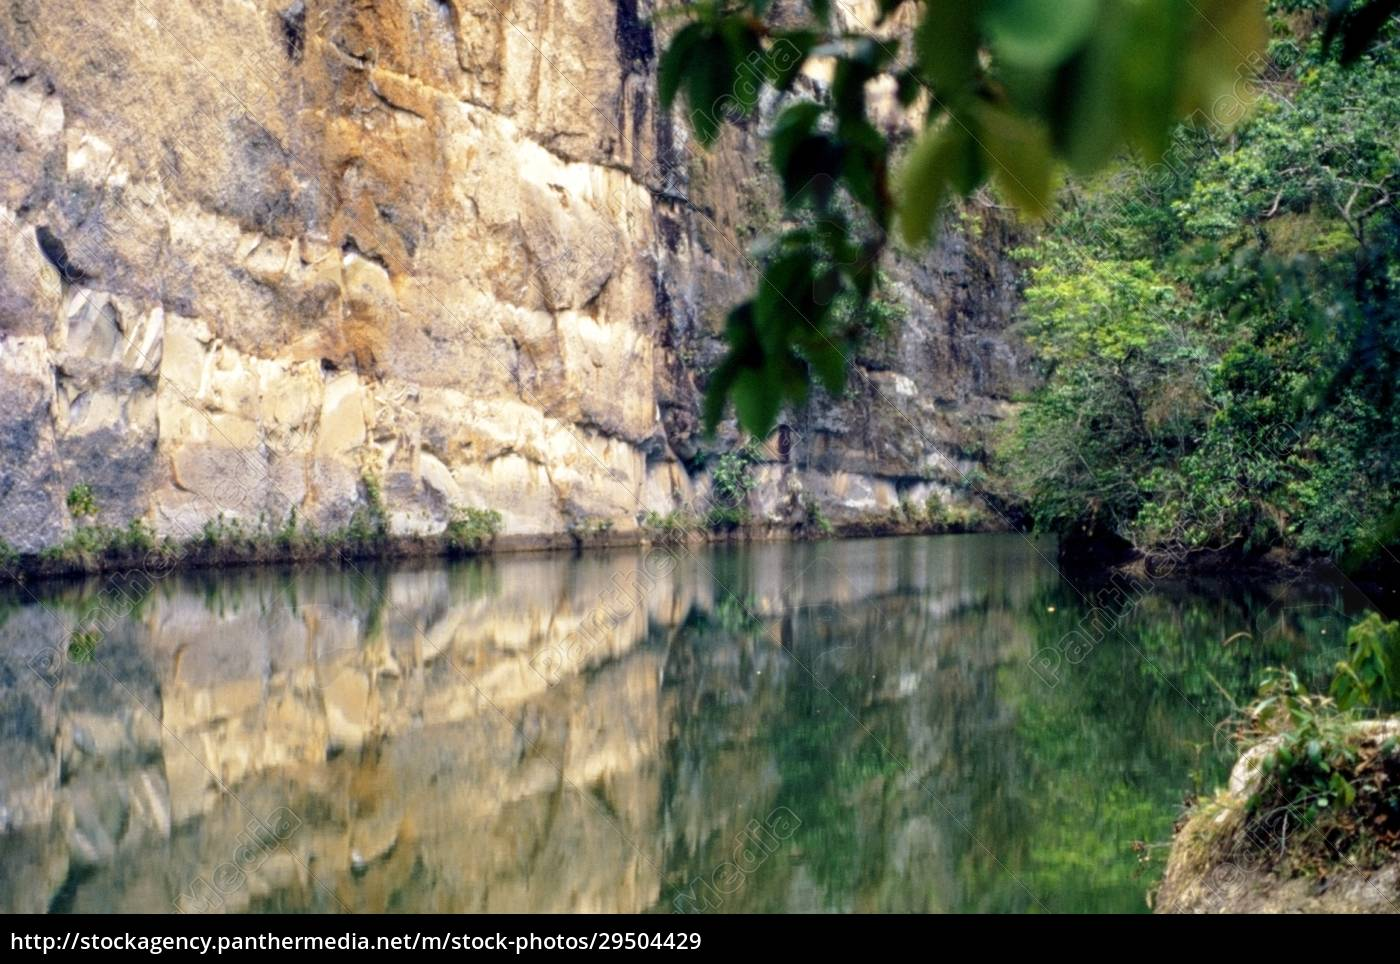 reflection, of, a, cliff, in, water - 29504429